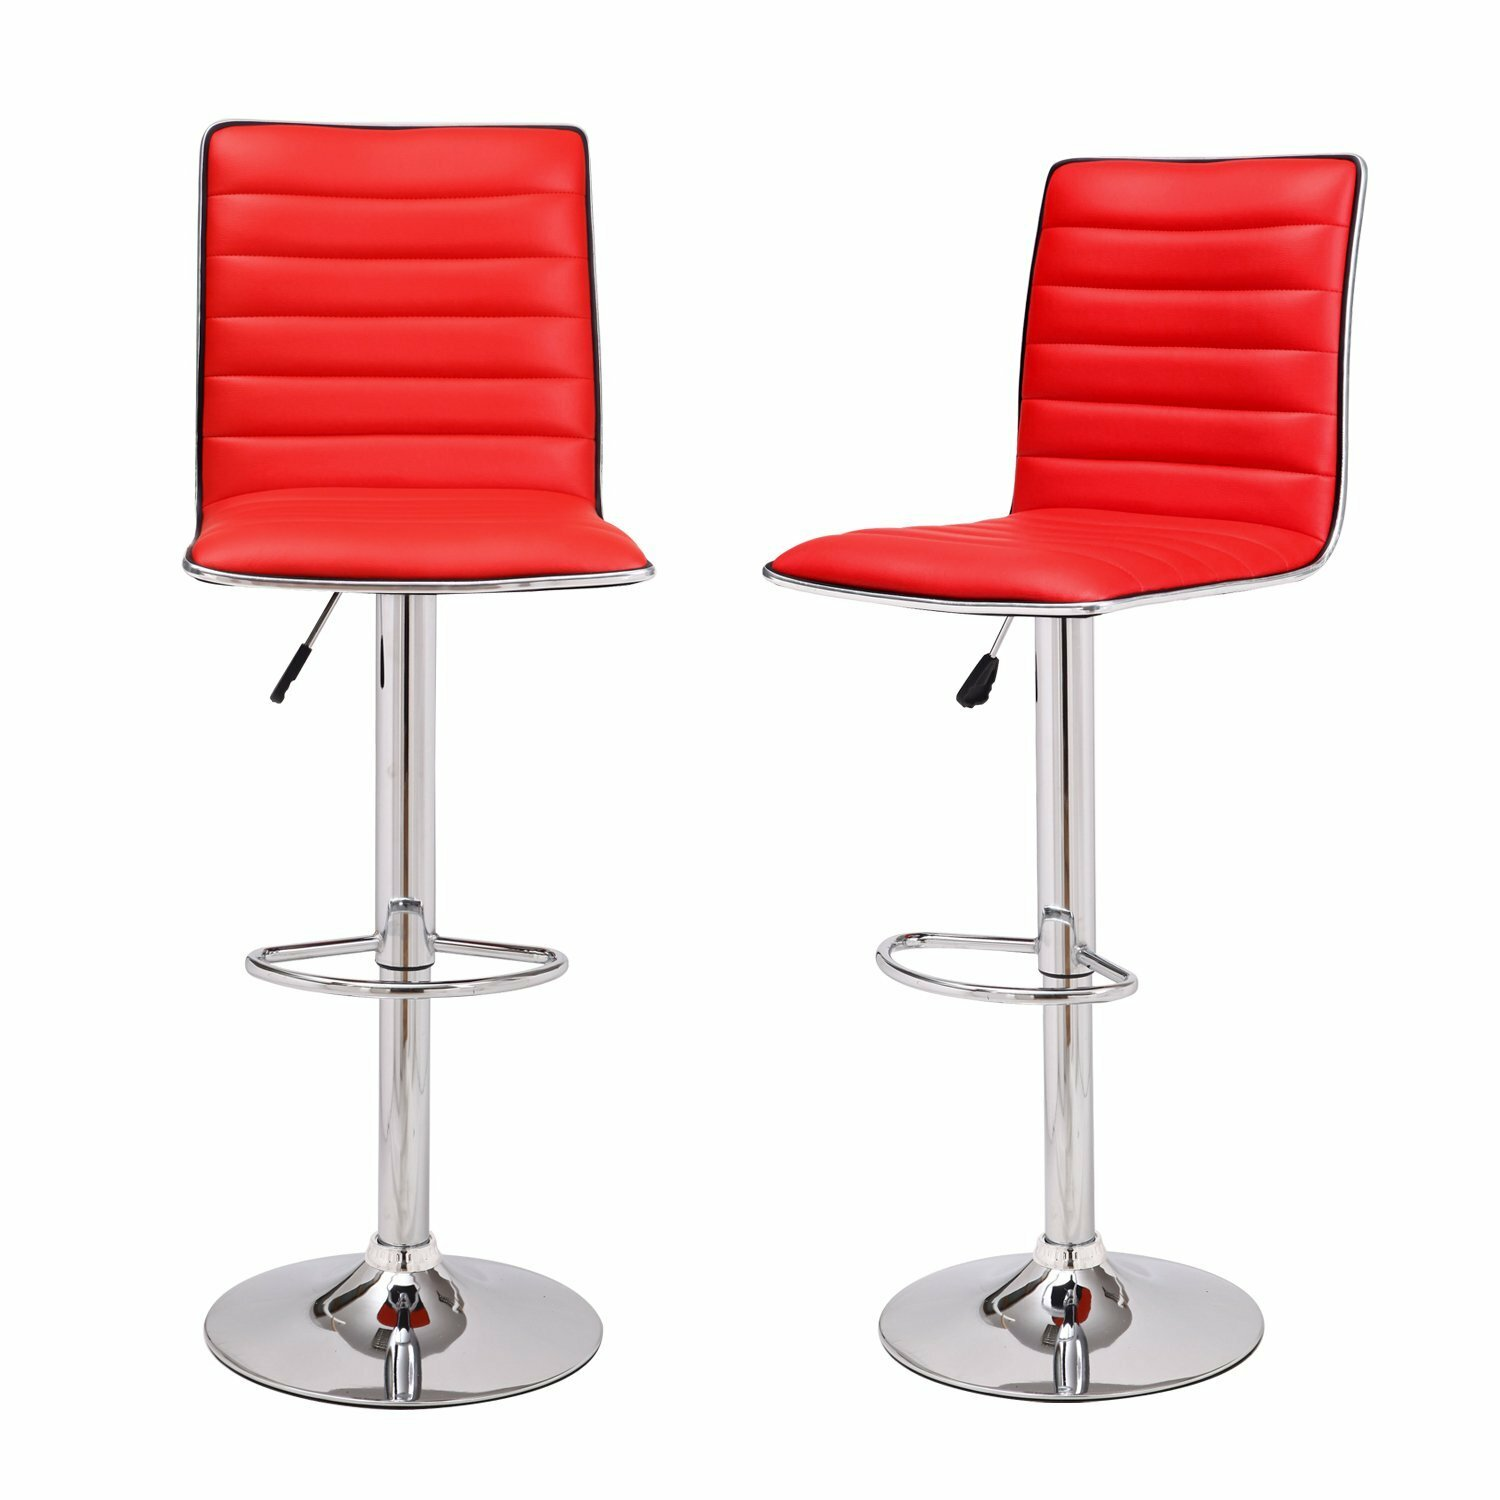 AdecoTrading Adjustable Height Swivel Bar Stool amp Reviews  : Adeco2BClassy2BAdjustable2BHeight2BSwivel2BBar2BStool2Bwith2BCushion from www.wayfair.com size 1500 x 1500 jpeg 141kB